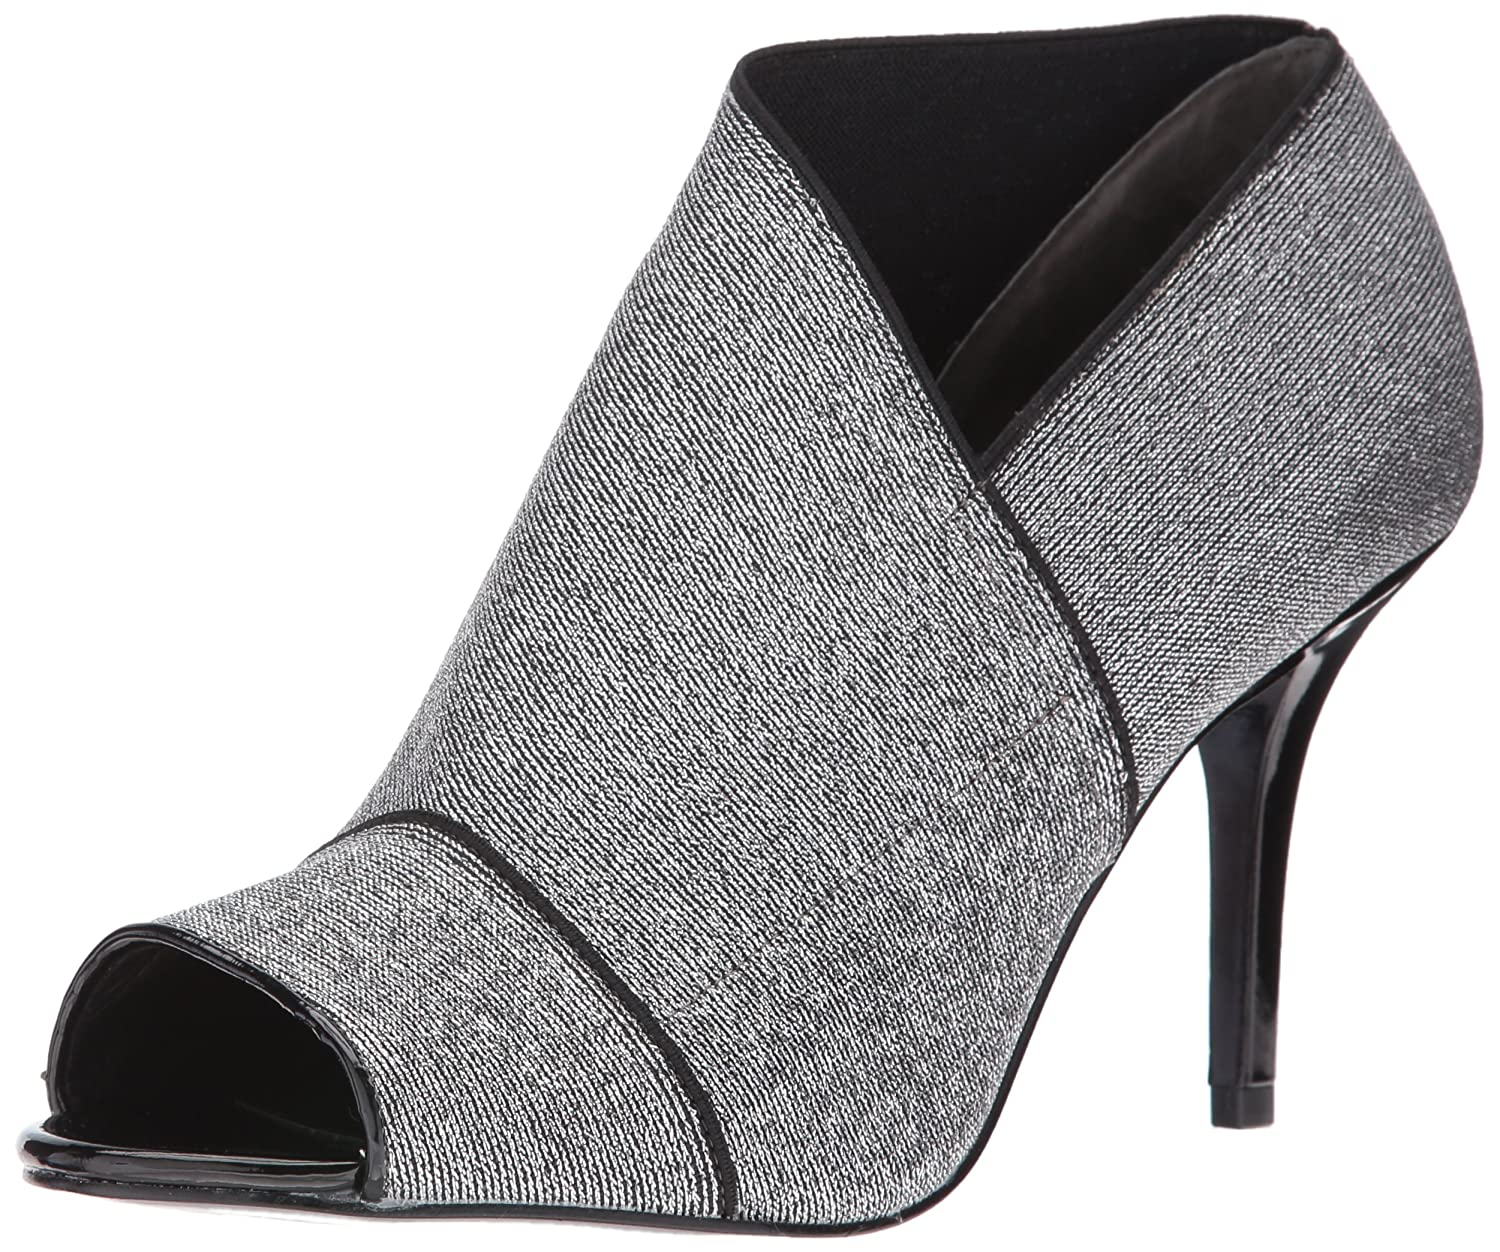 Adrianna Papell Women's Aneva Dress Pump B01DZPMHRA 8 UK/8 M US|Gunmetal